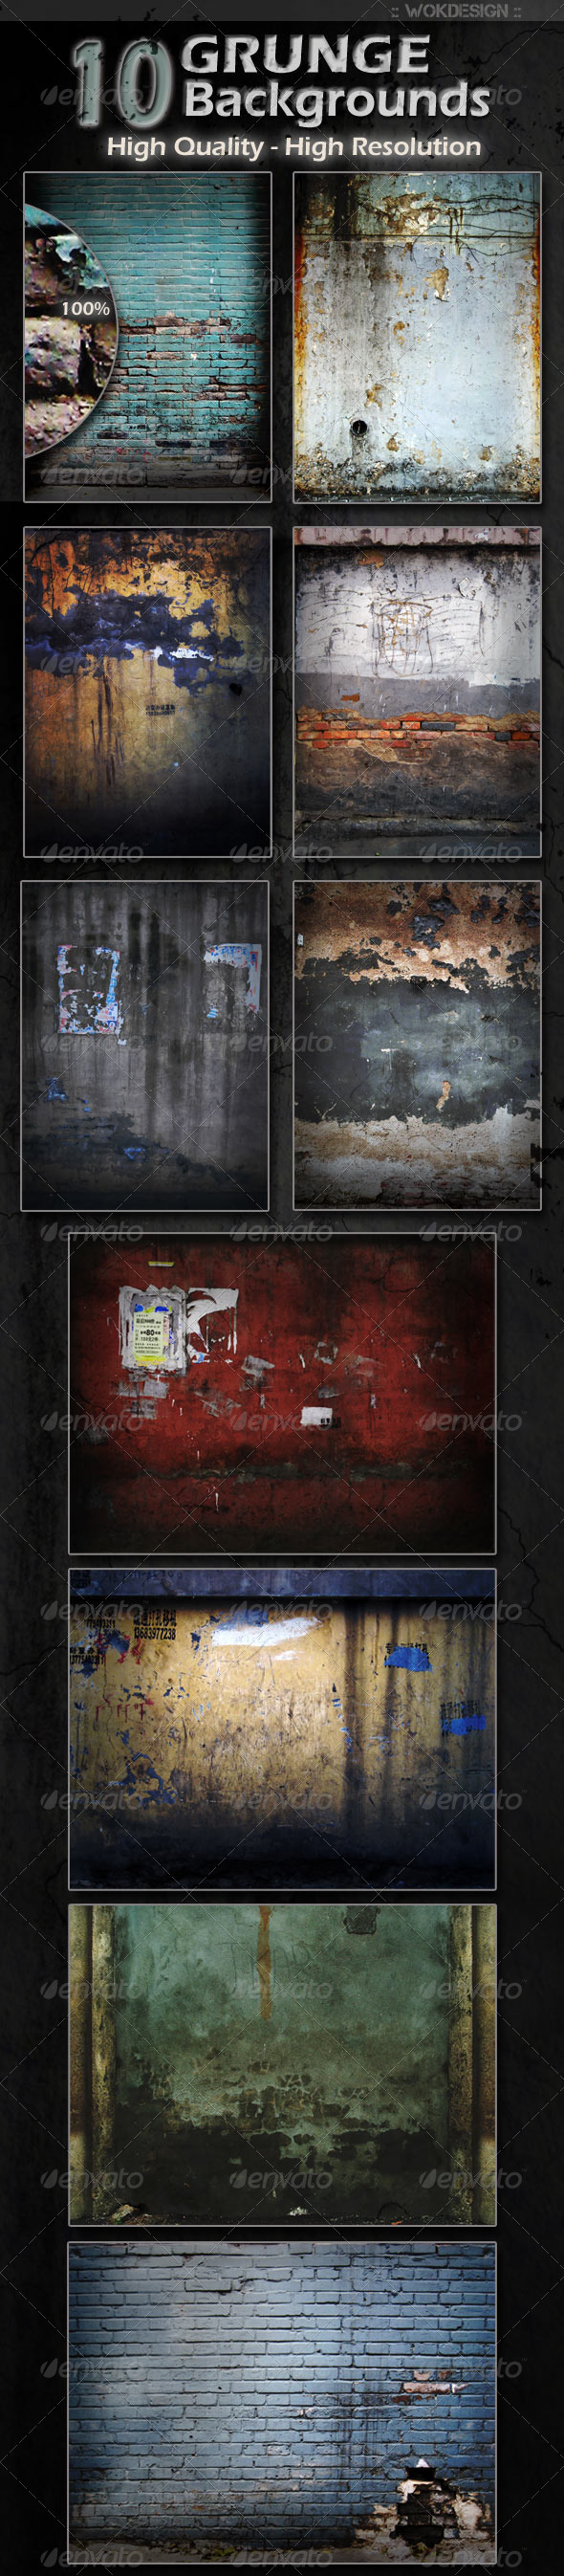 GraphicRiver 10 Grunge Backgrounds 1289021